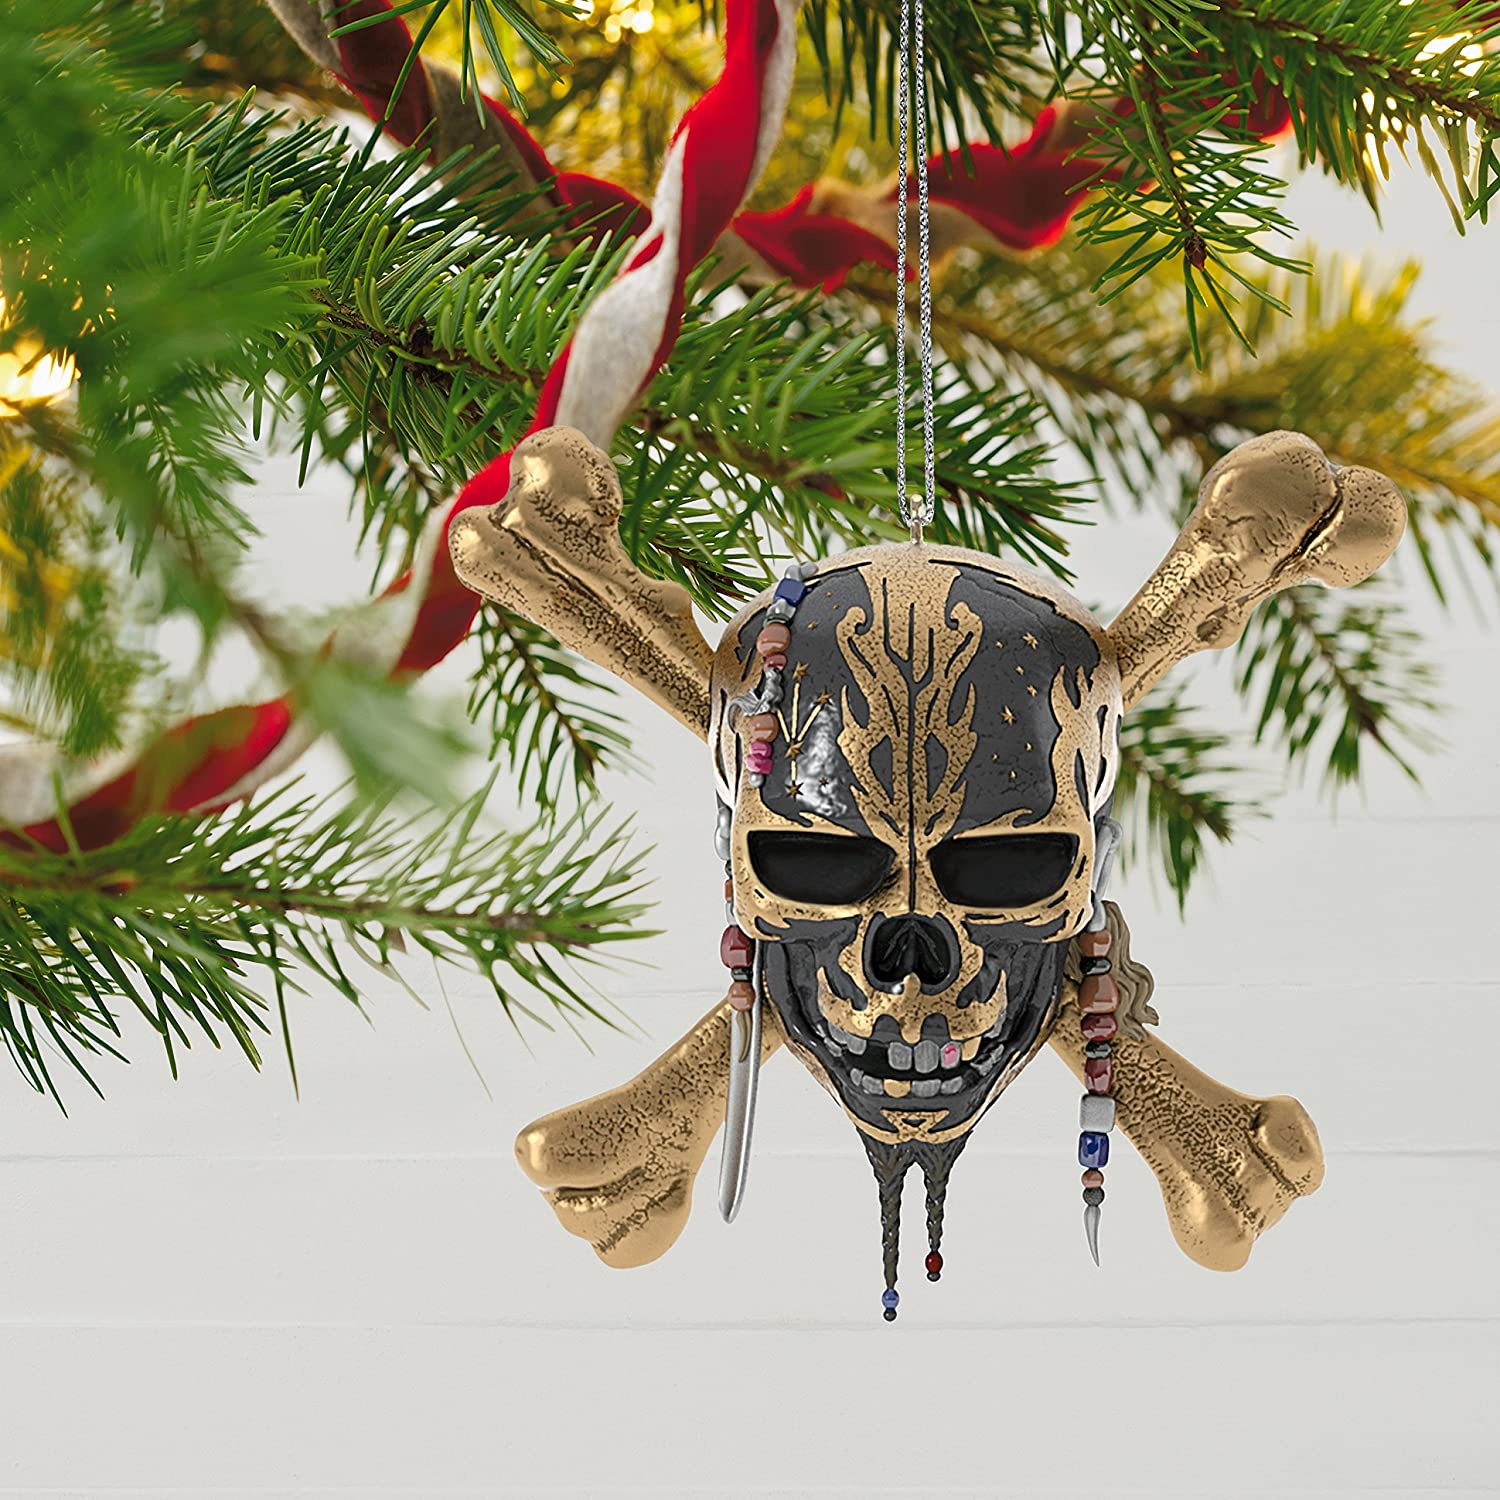 Ornaments Official Star Wars Christmas Tree Decorations Gold